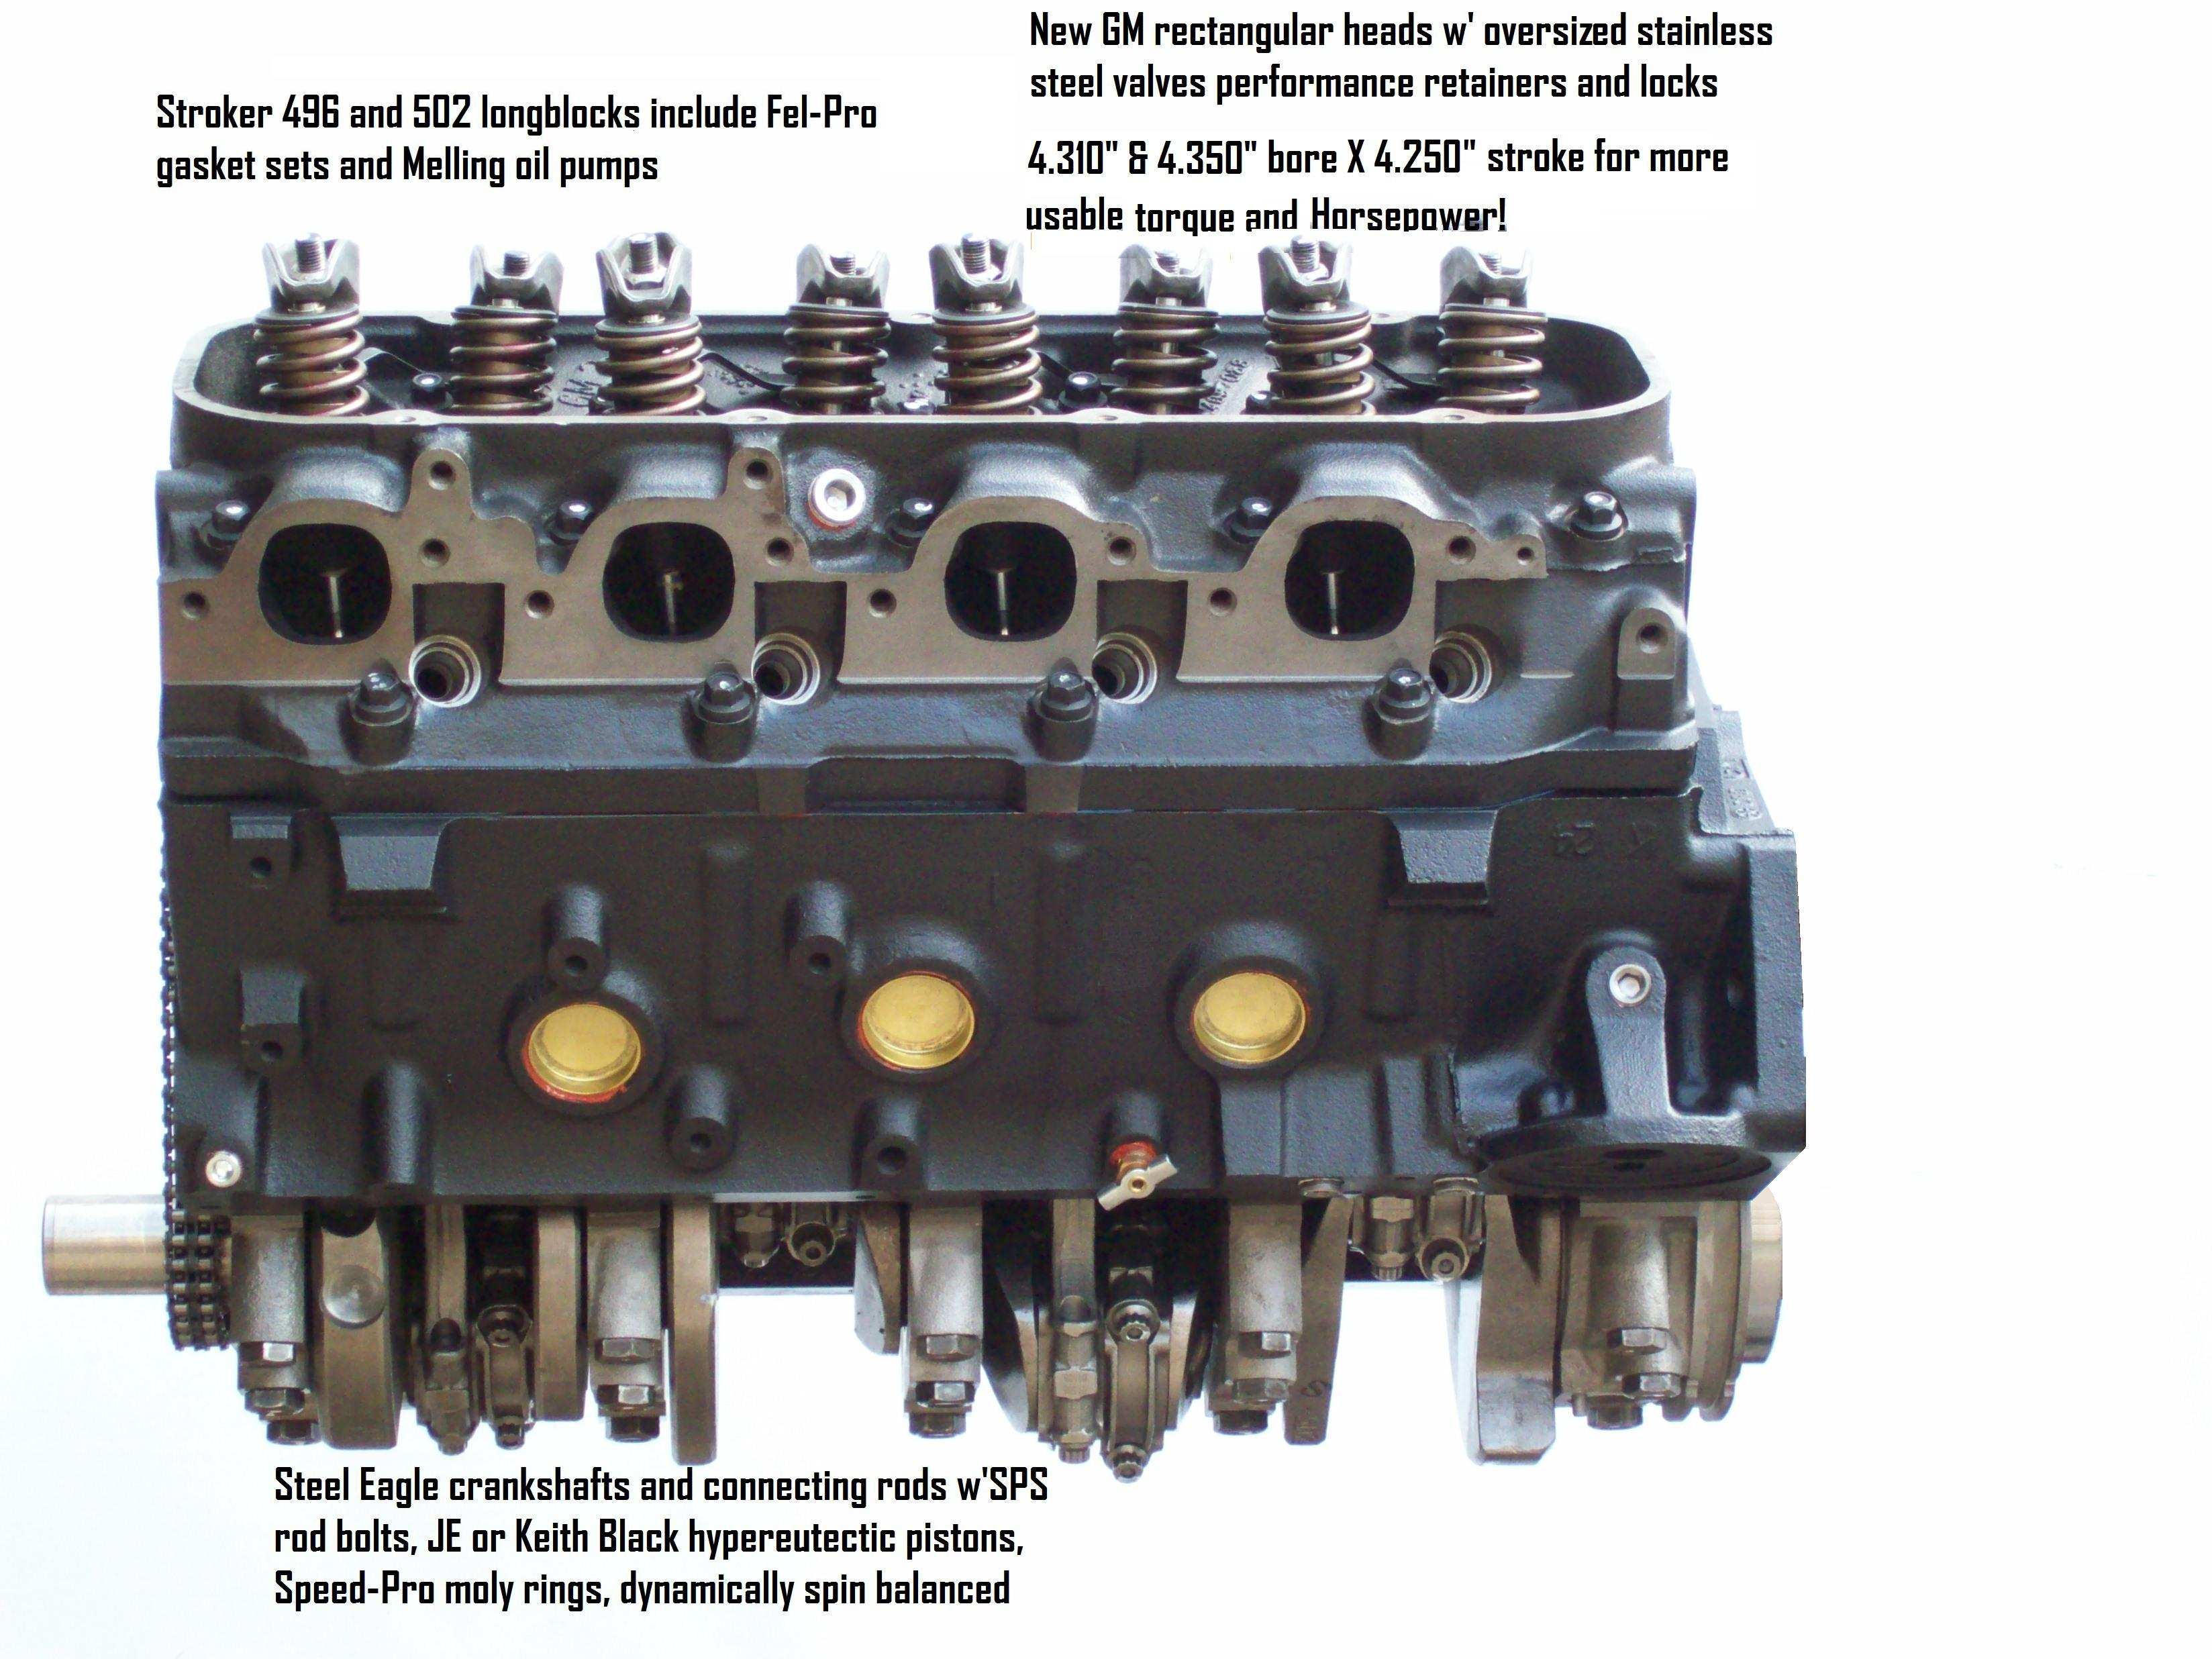 remanufactured big block chevrolet engines exchanged or custom rebuilt rh remanufactured engines com Chevy 454 Engine Specifications 454 SS Engine